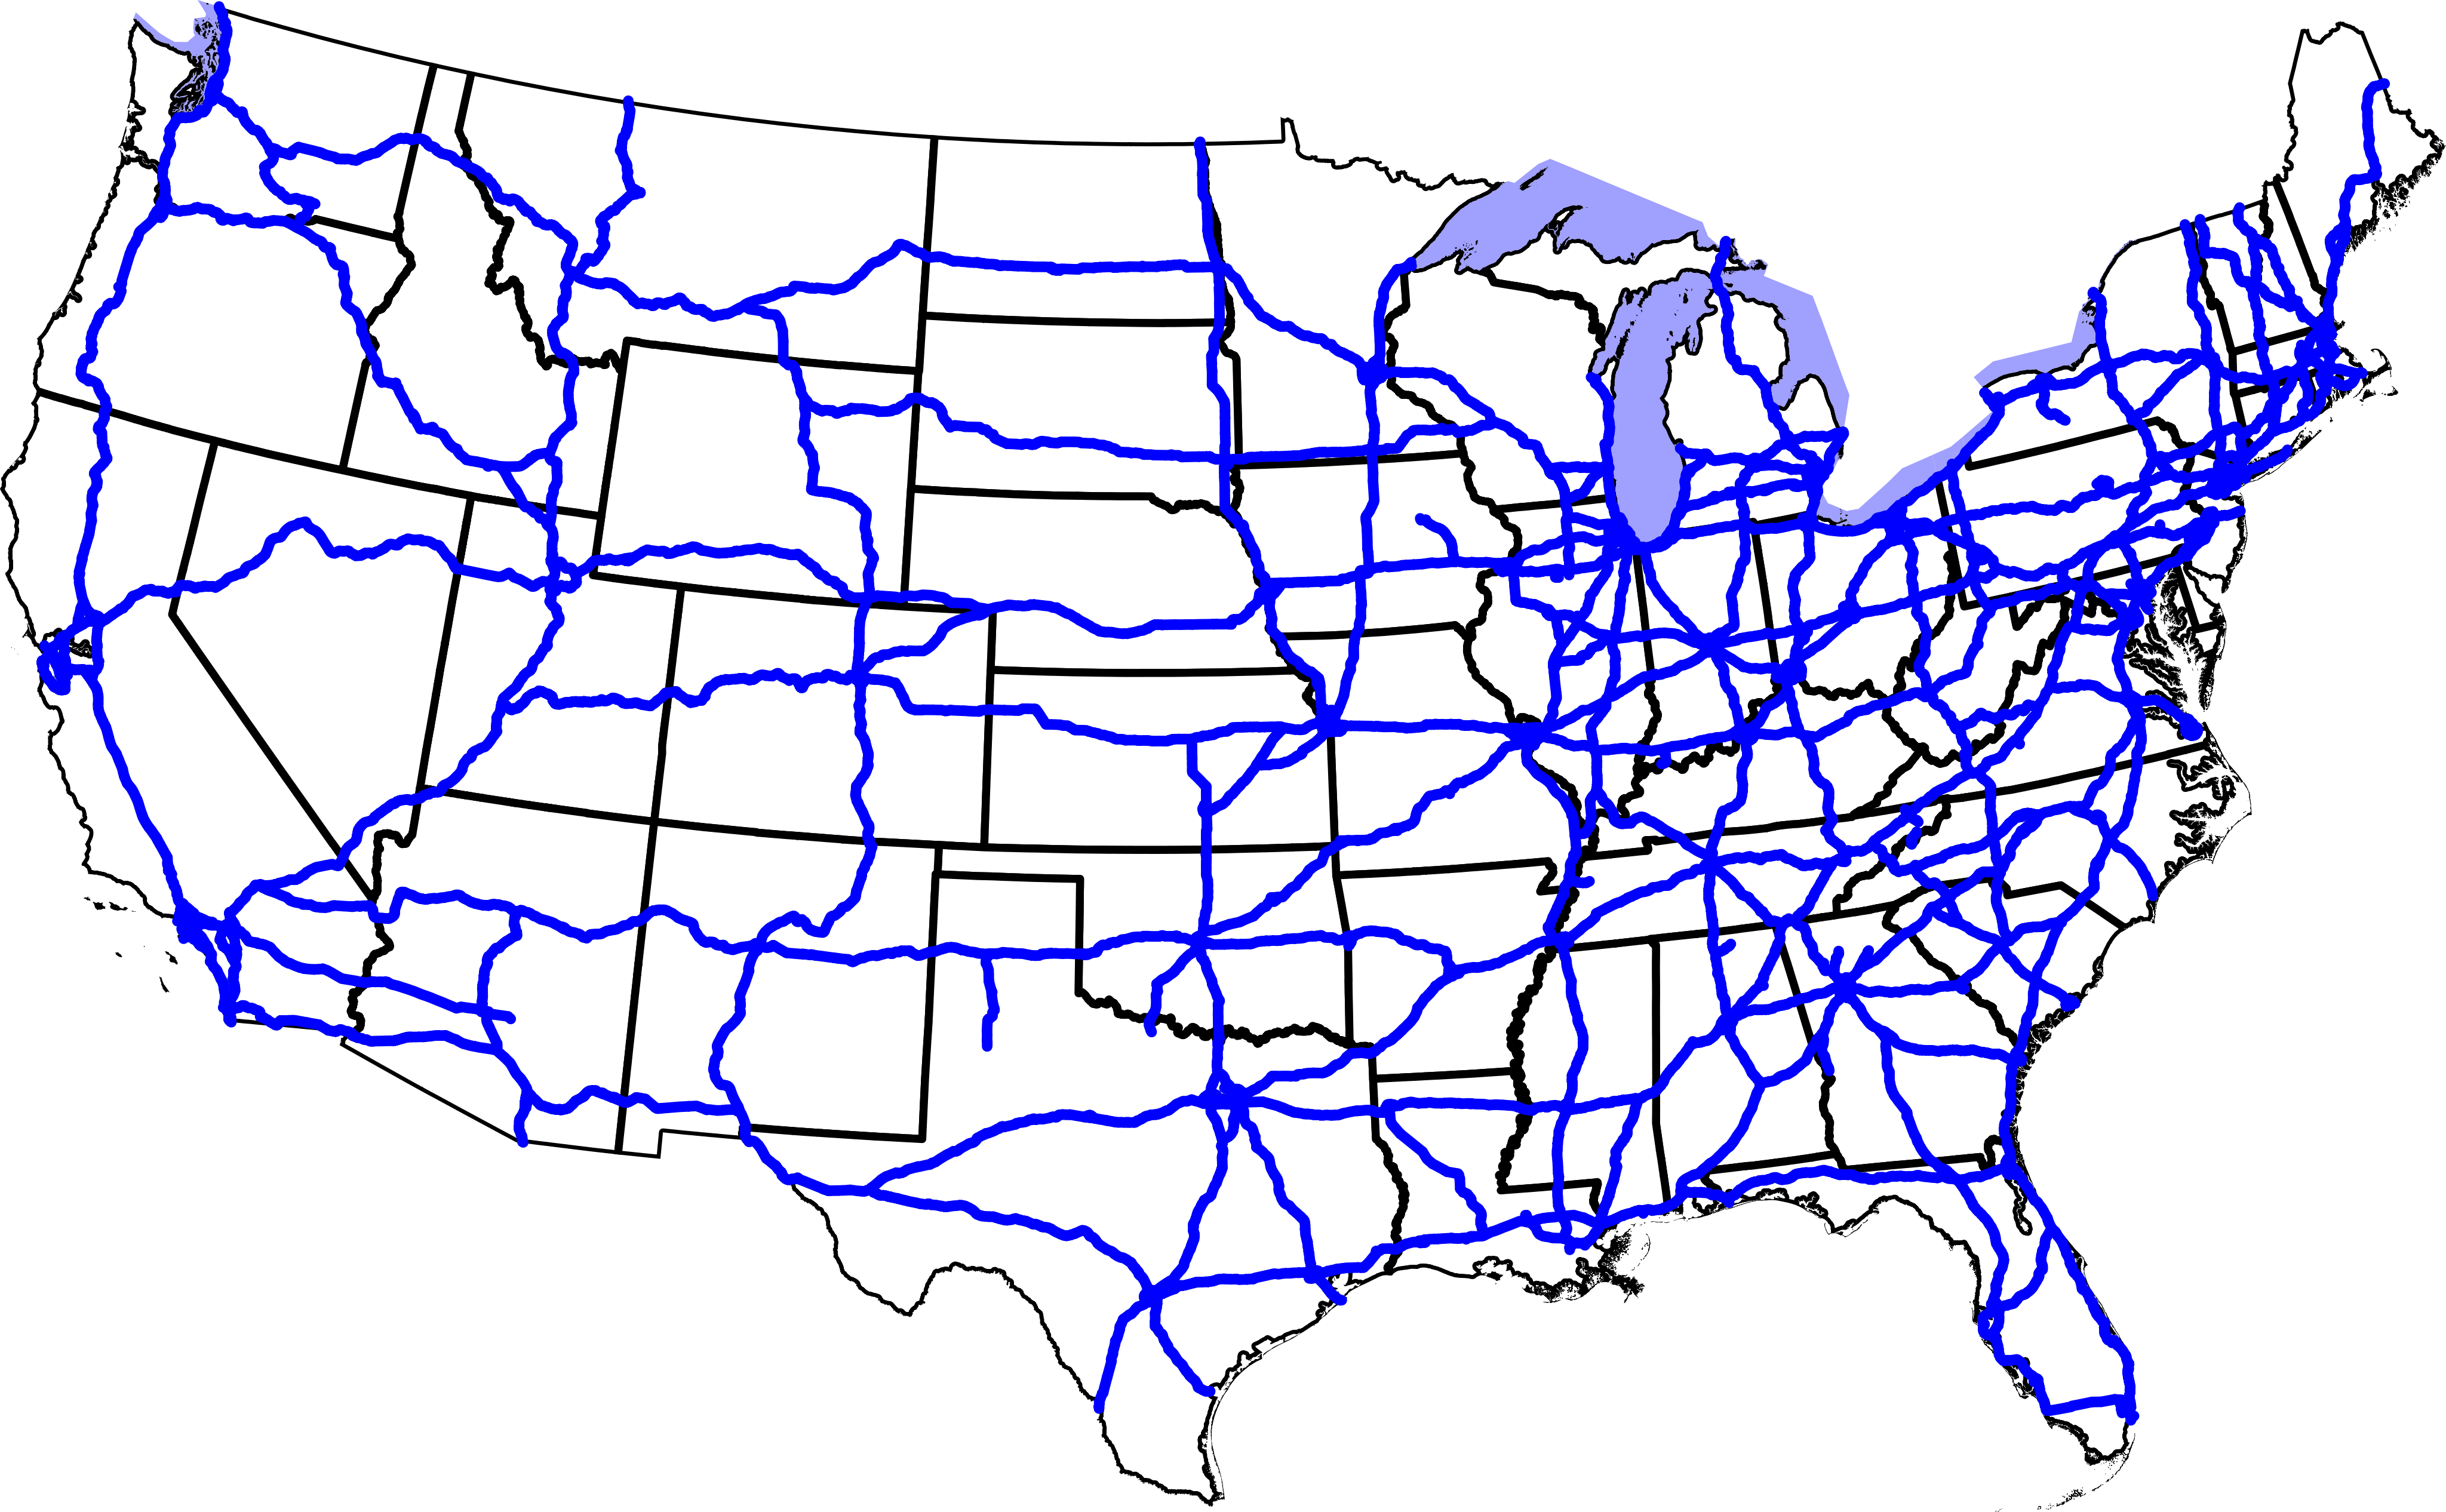 Clipart map of united states with interstates graphic black and white download us interstate map | Map of the World graphic black and white download